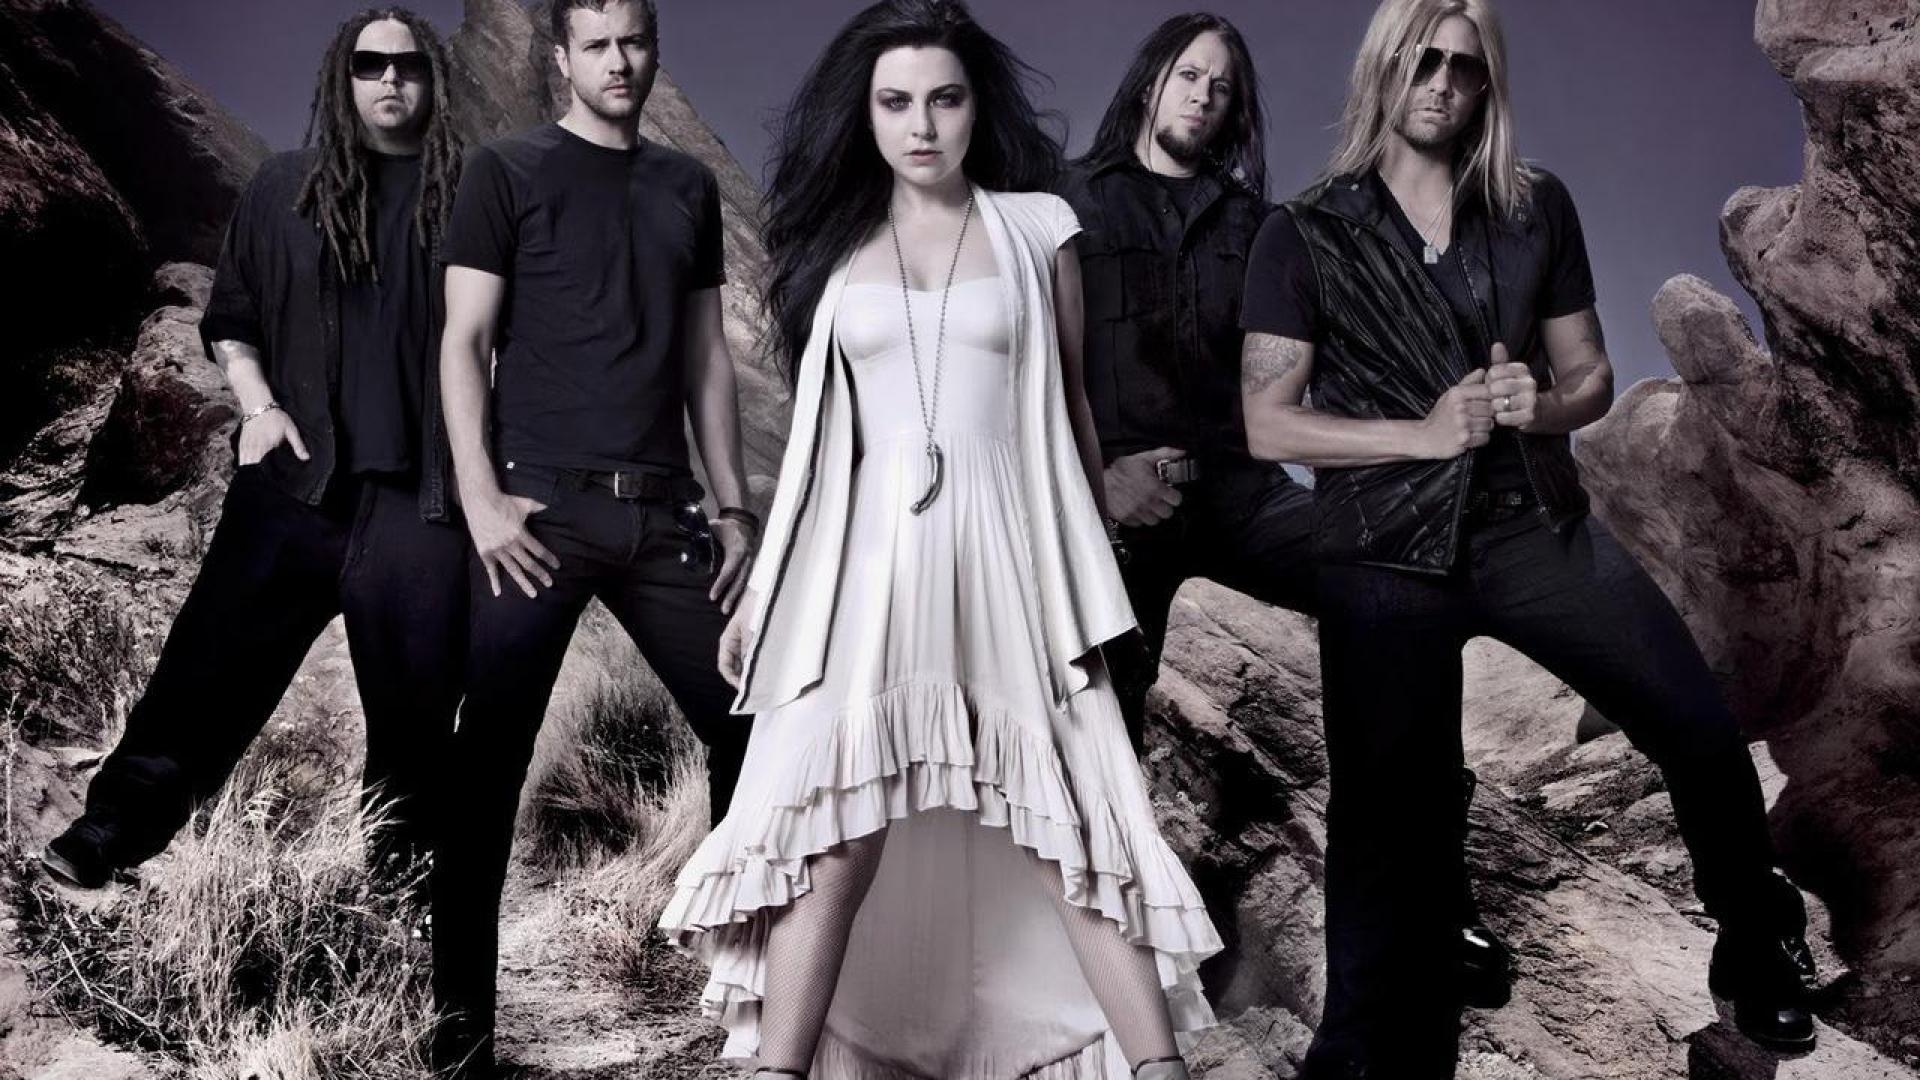 Evanescence 1920x1200 Wallpapers in addition Evanescence Wallpaper besides Jeep Logo Wallpaper in addition  on evanescence 18723